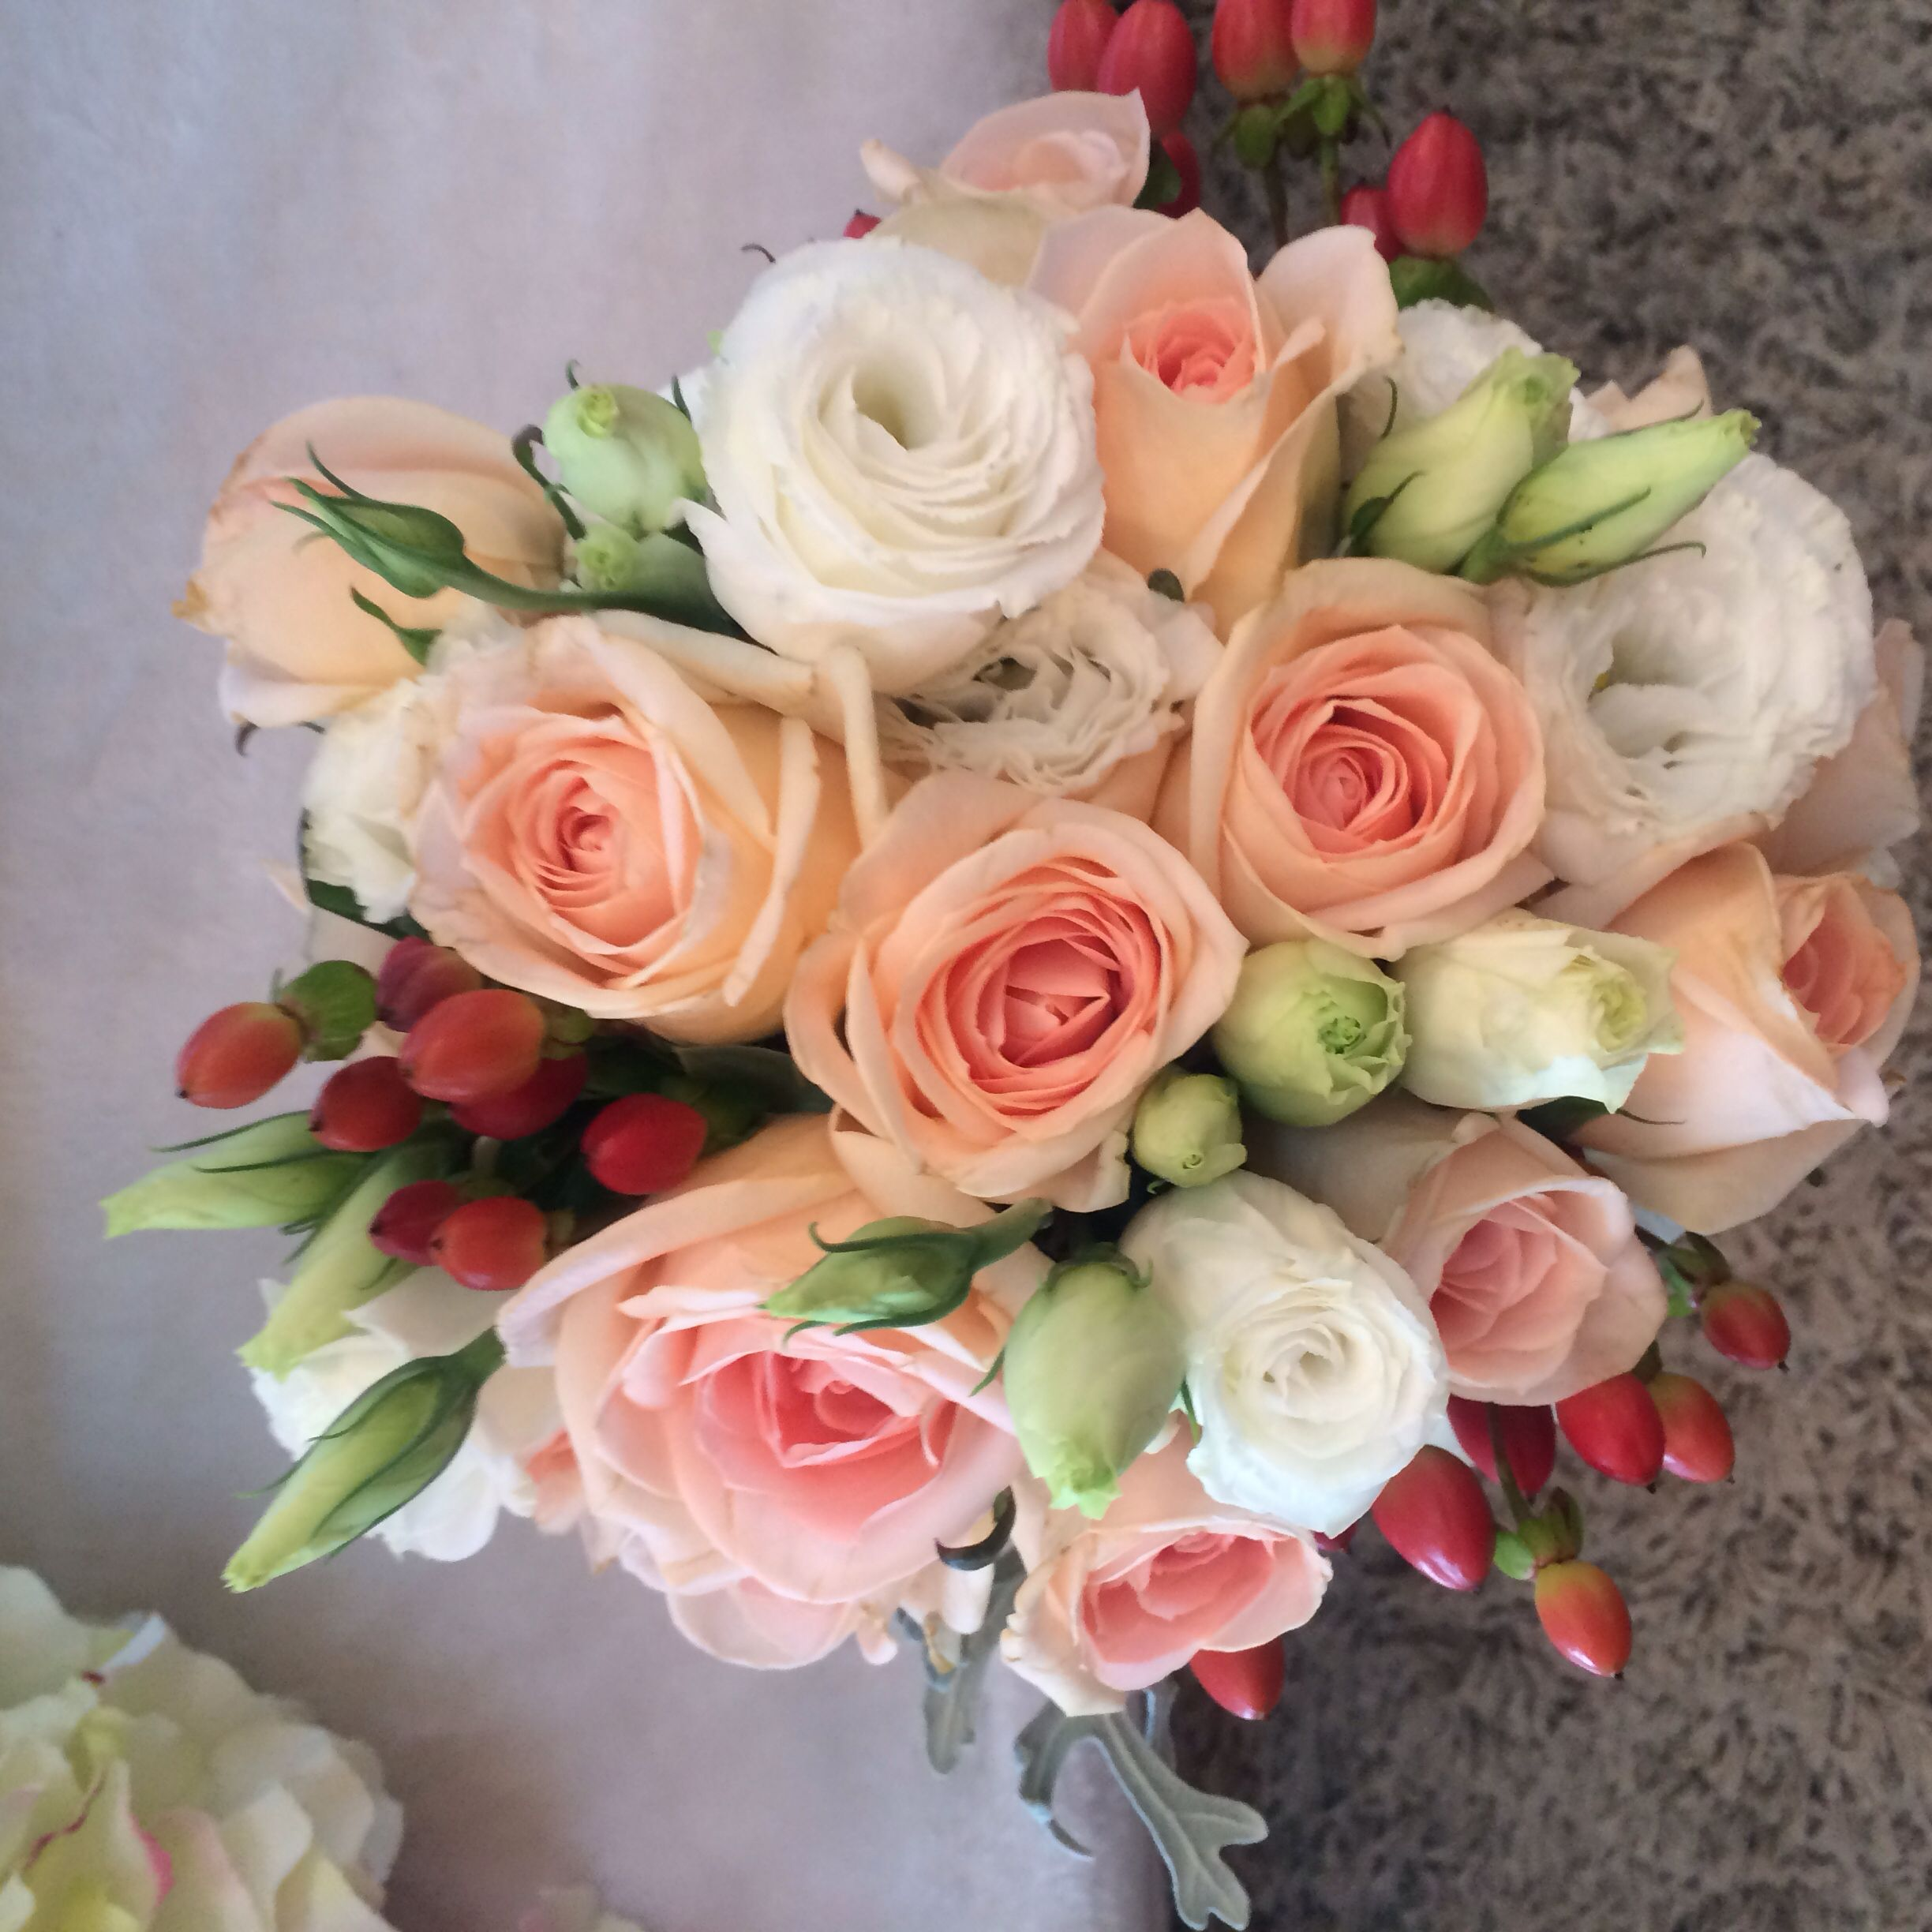 Hand bouquet fresh flowers eustoma red berries champagne roses hand bouquet fresh flowers eustoma red berries champagne roses izmirmasajfo